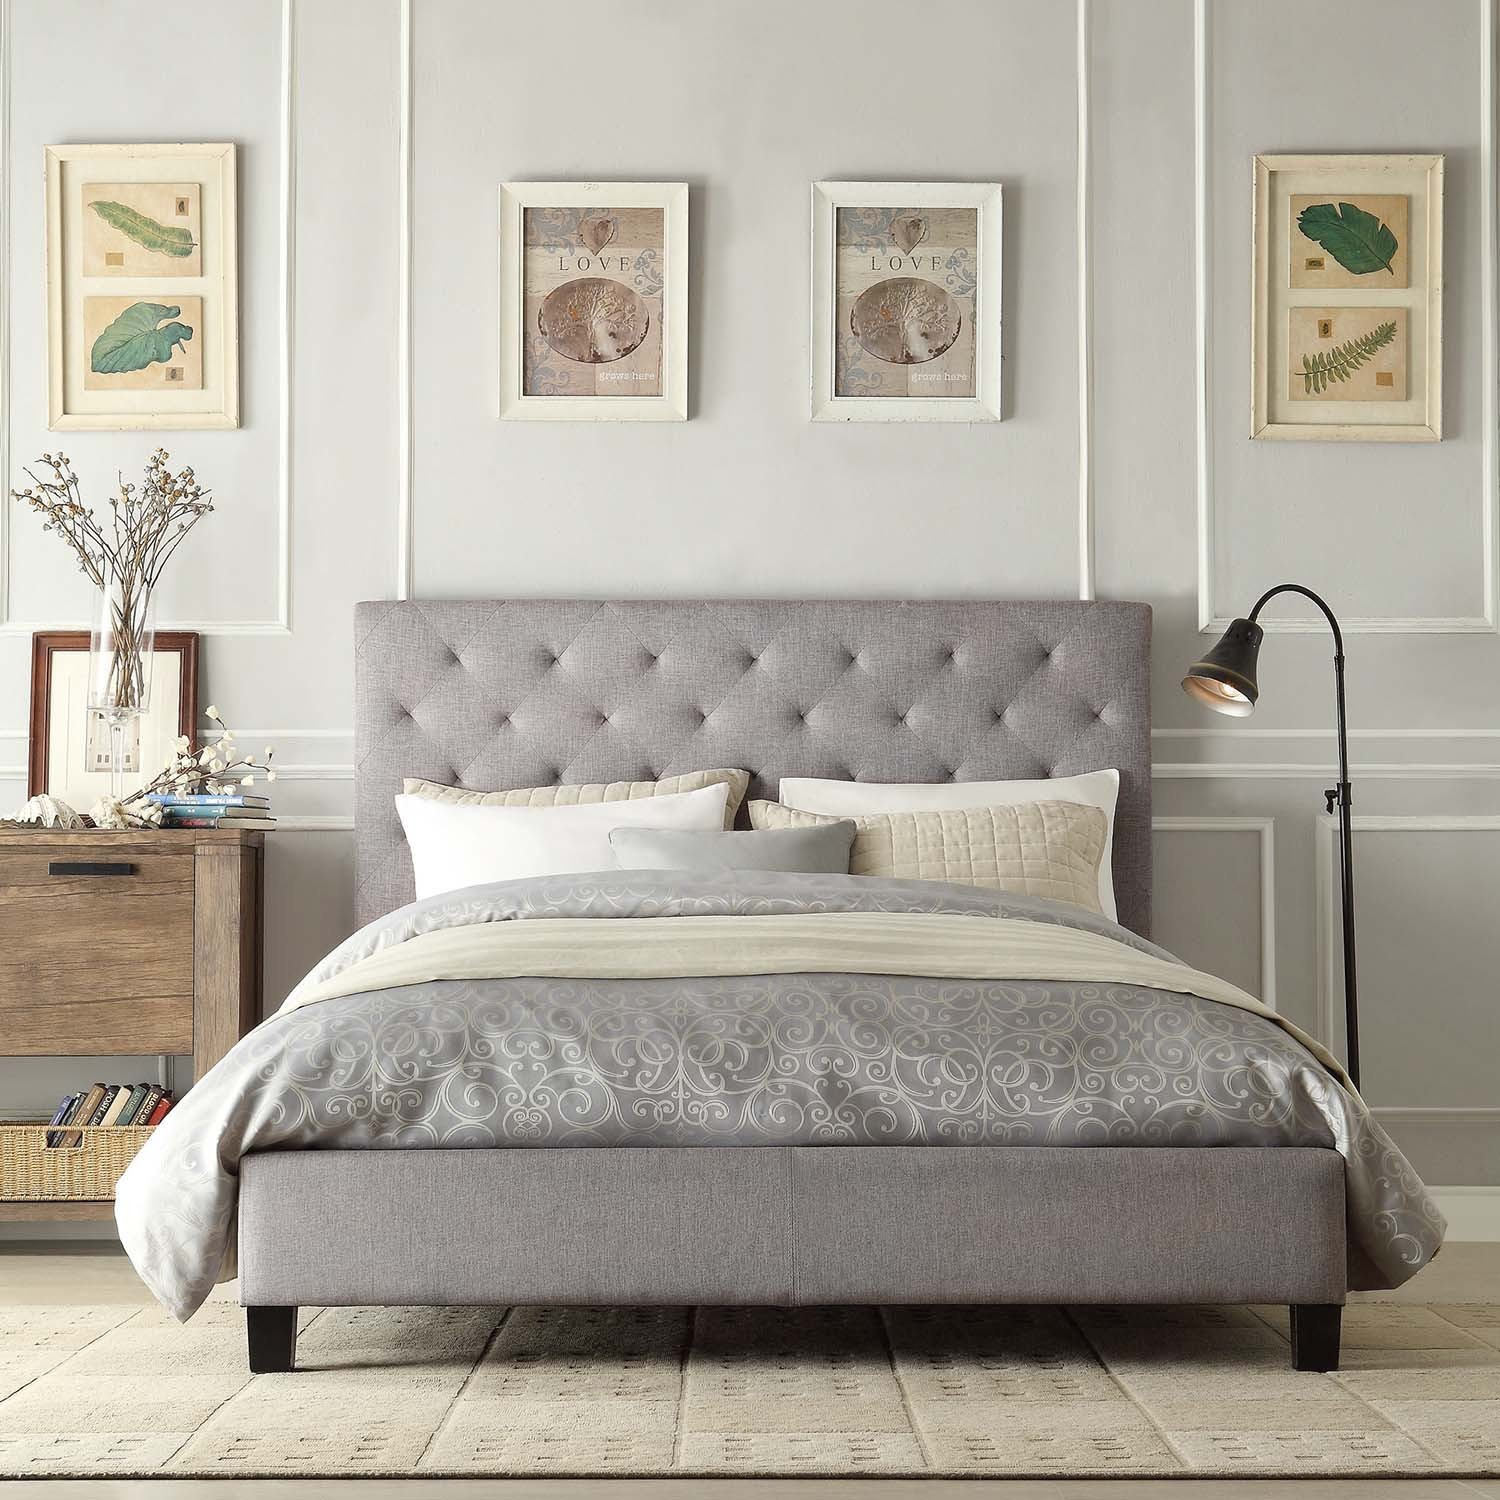 White bedrooms bedside tables night stands upholstered headboards - Upholstery Headboard In Grey Grey Bedcover Idea White Pillows A Black Coated Metal Stand Lamp A